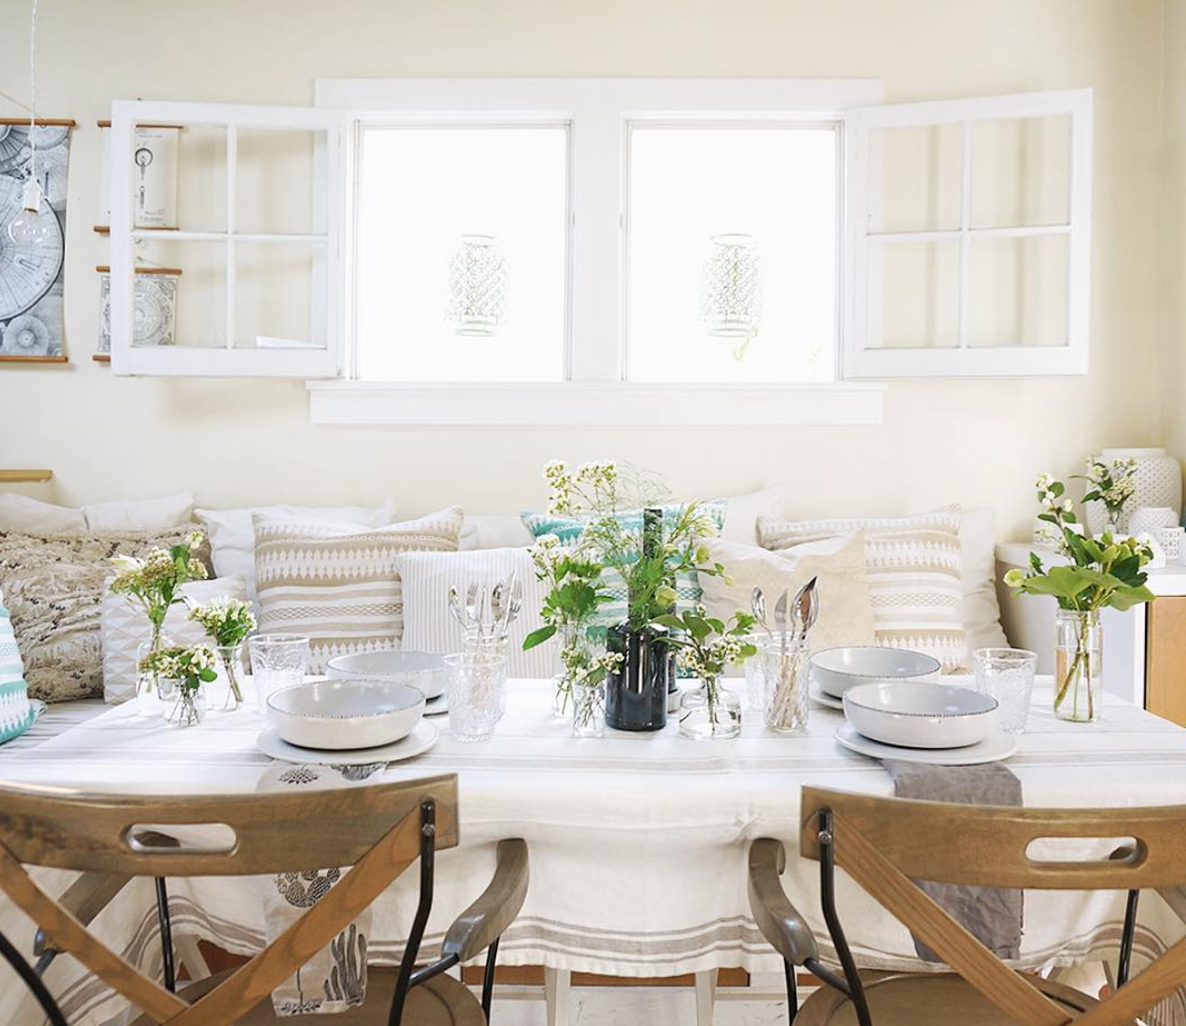 The beautiful and talented Whitney Leigh Morris inspires every day with her Tiny Canal Cottage on Instagram. Her simplistic style and small space shows us that large doesn't mean sh*t. Follow her for more: @whitneyleighmorris.